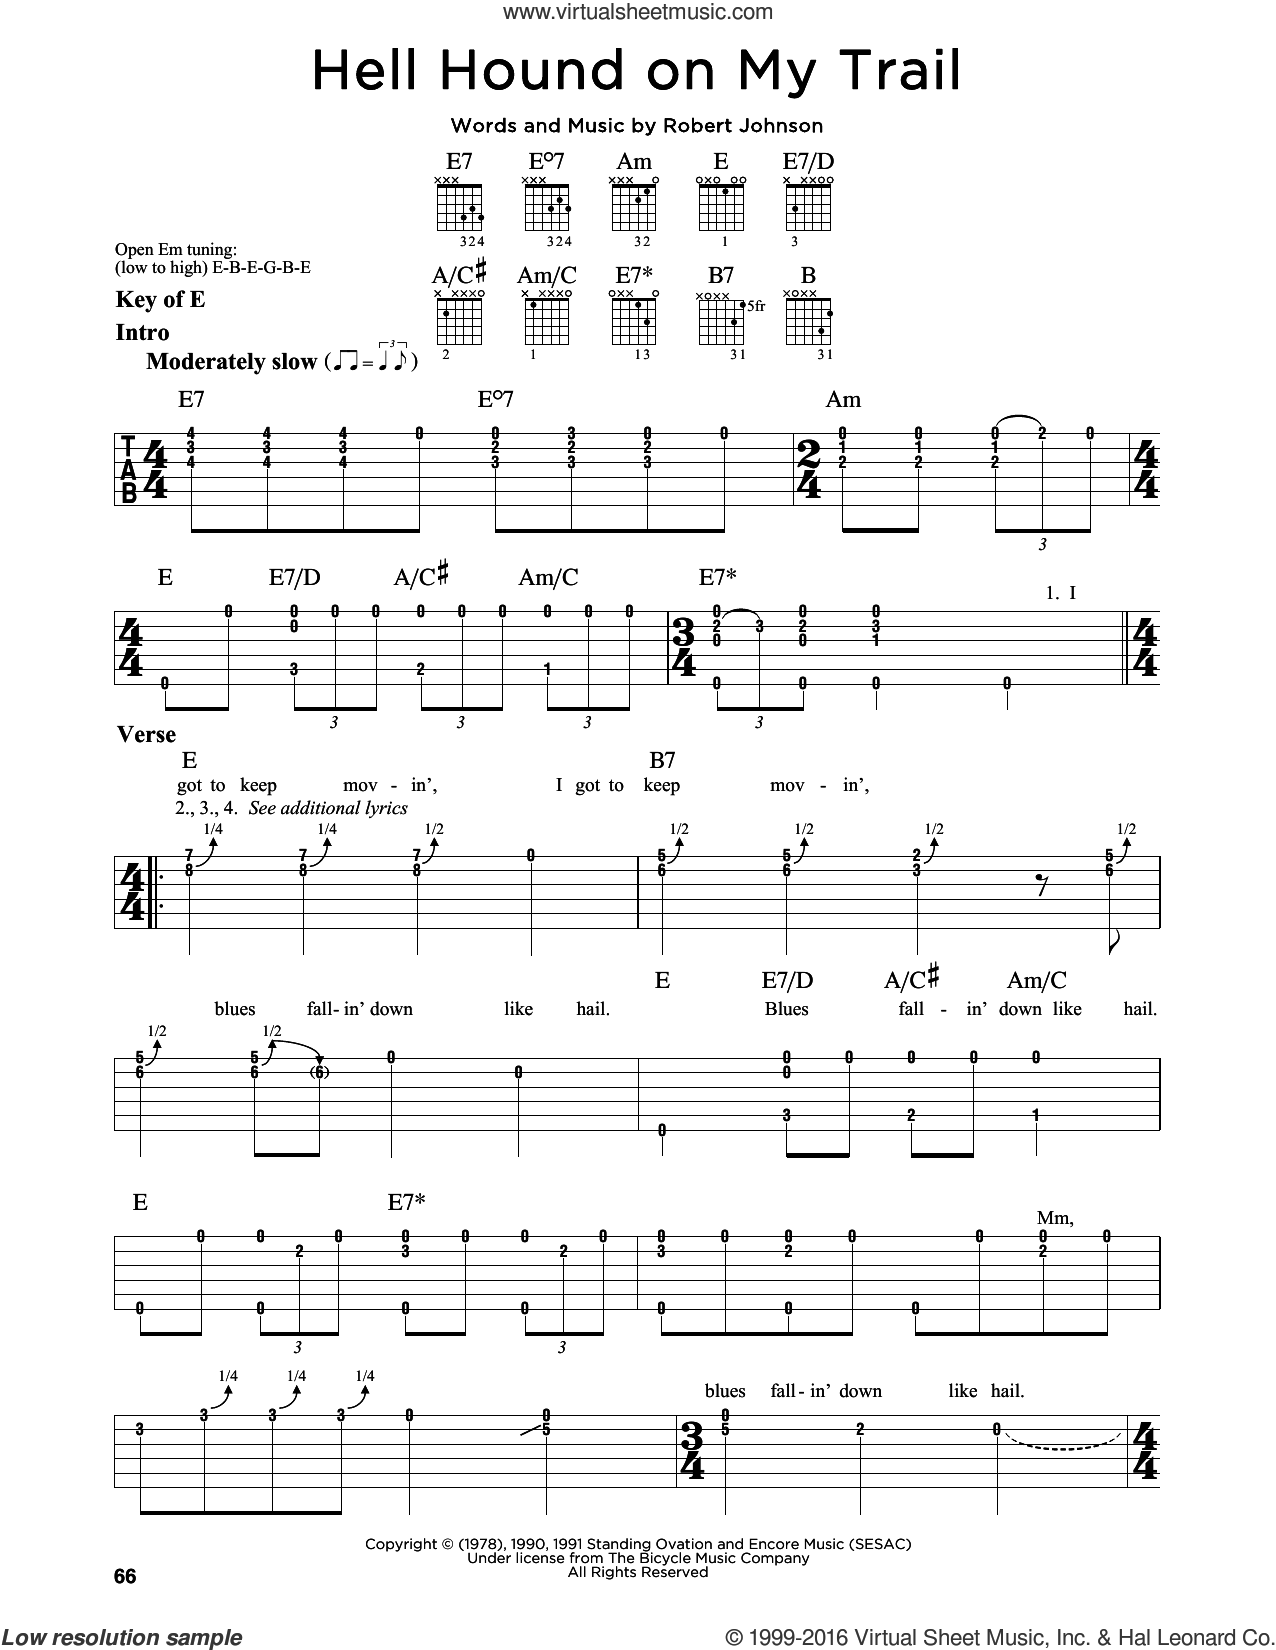 Hell Hound On My Trail sheet music for guitar solo (lead sheet) by Robert Johnson. Score Image Preview.